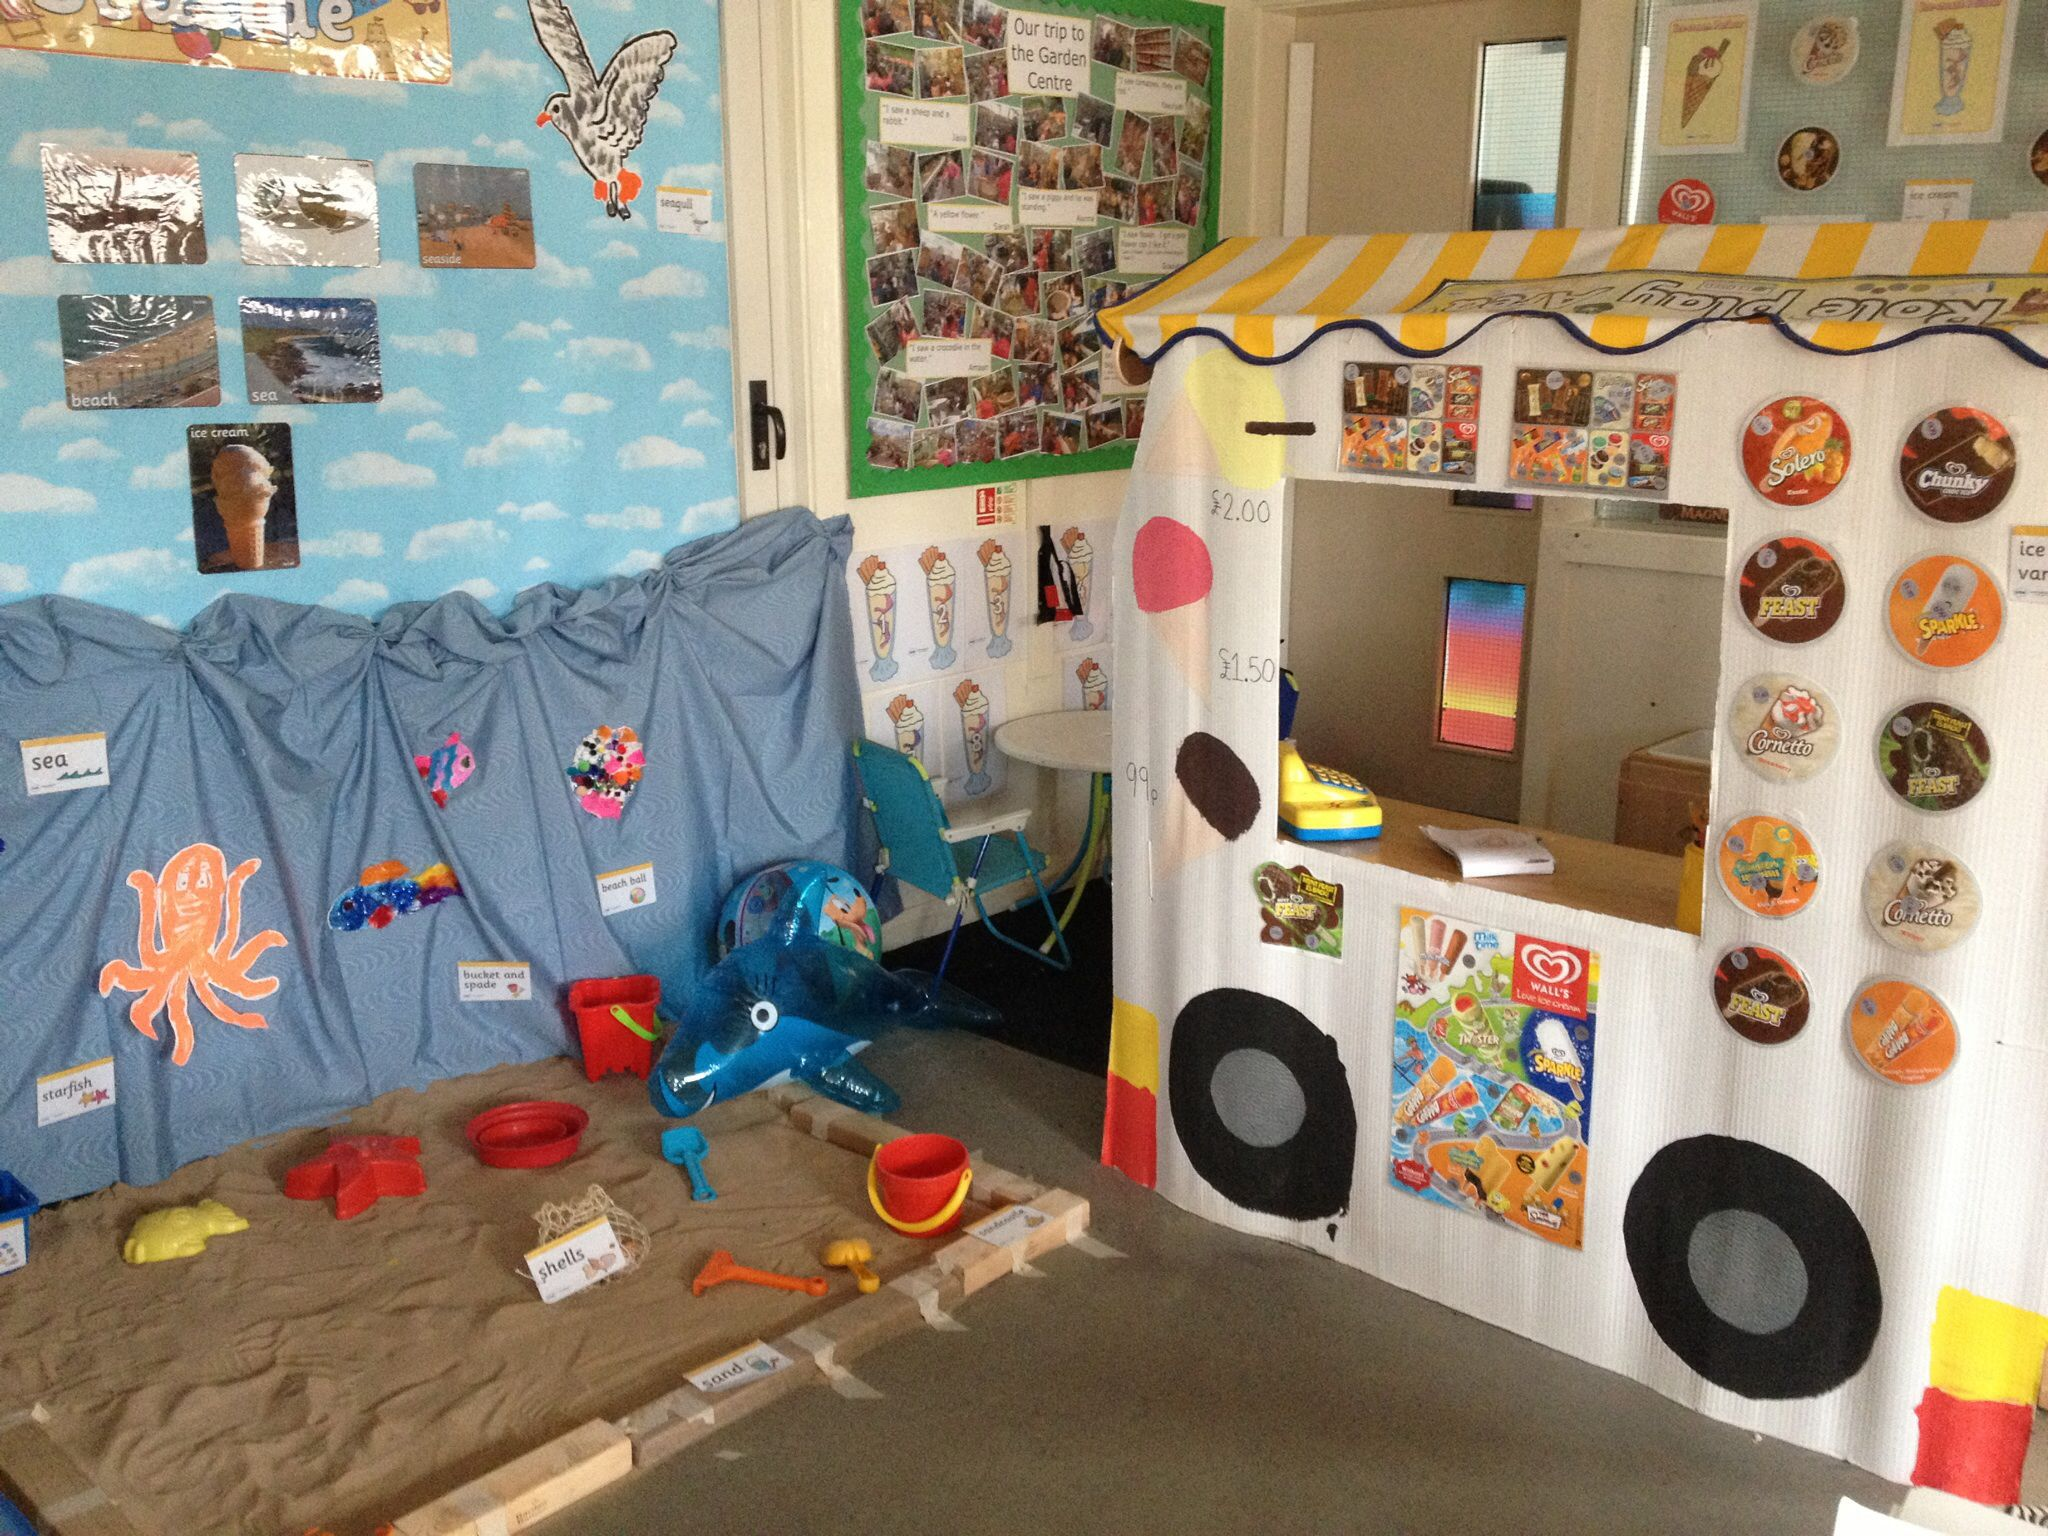 ice cream van and seaside role play area interest areas